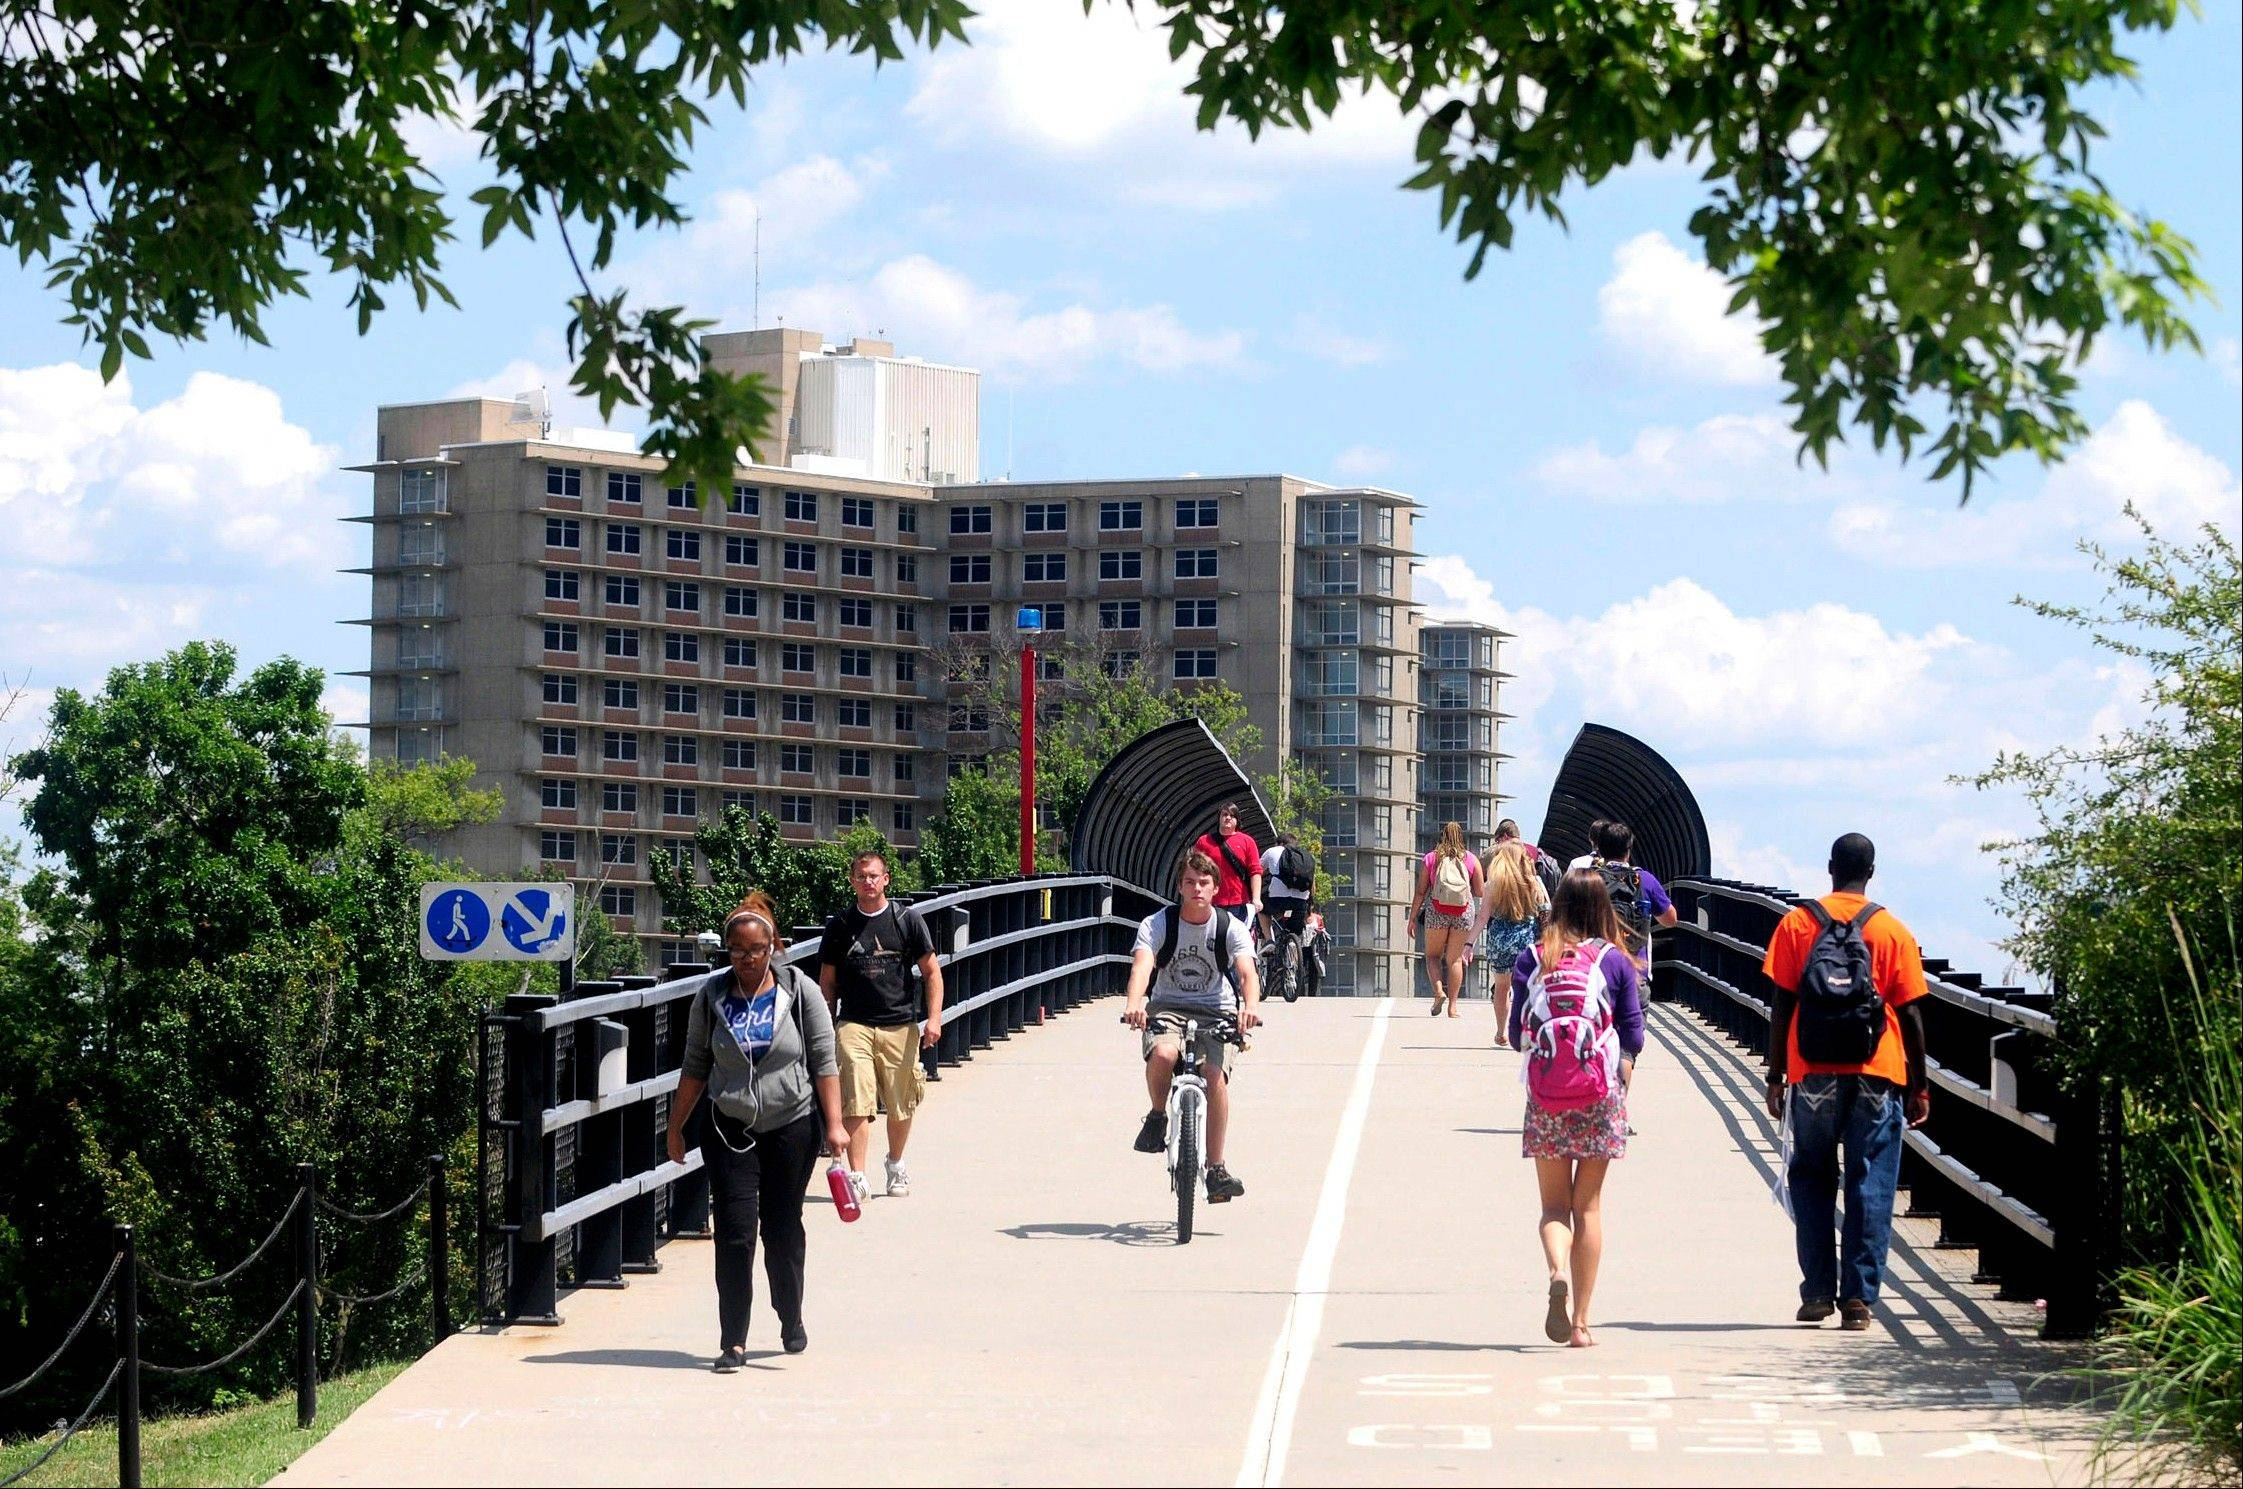 Students walk across a bridge on the first day of classes at Southern Illinois University in Carbondale on Aug. 20. Enrollment at many of Illinois' public universities is down this fall.